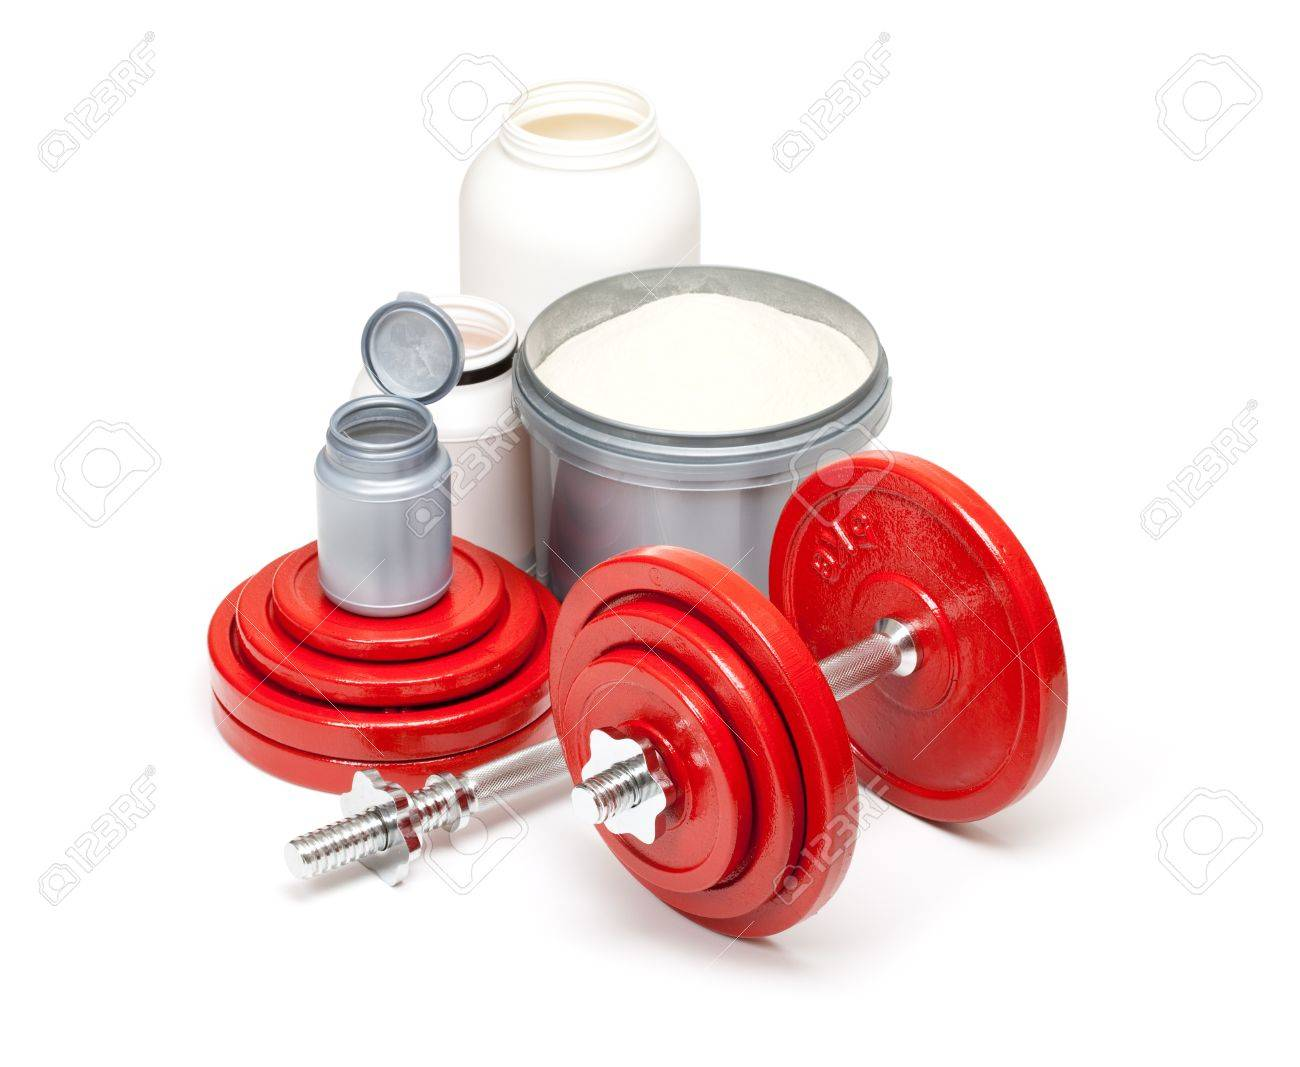 Dumbbells and supplements for body building Stock Photo - 10570504